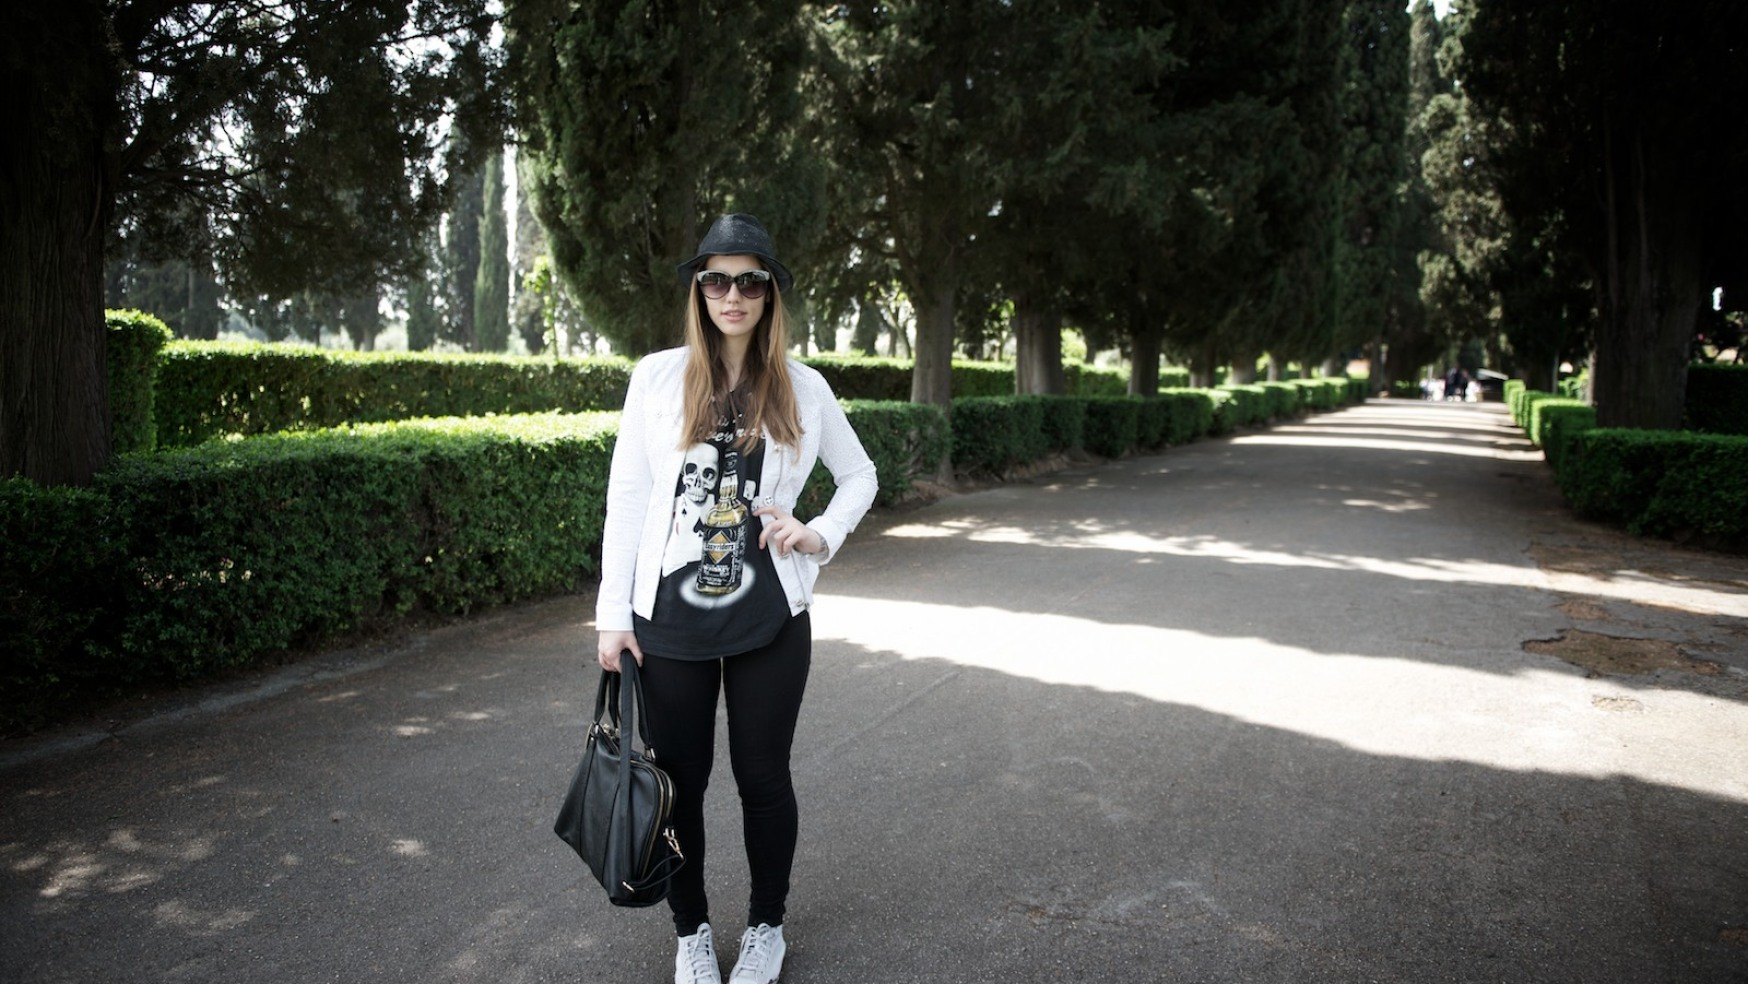 Rome day 3